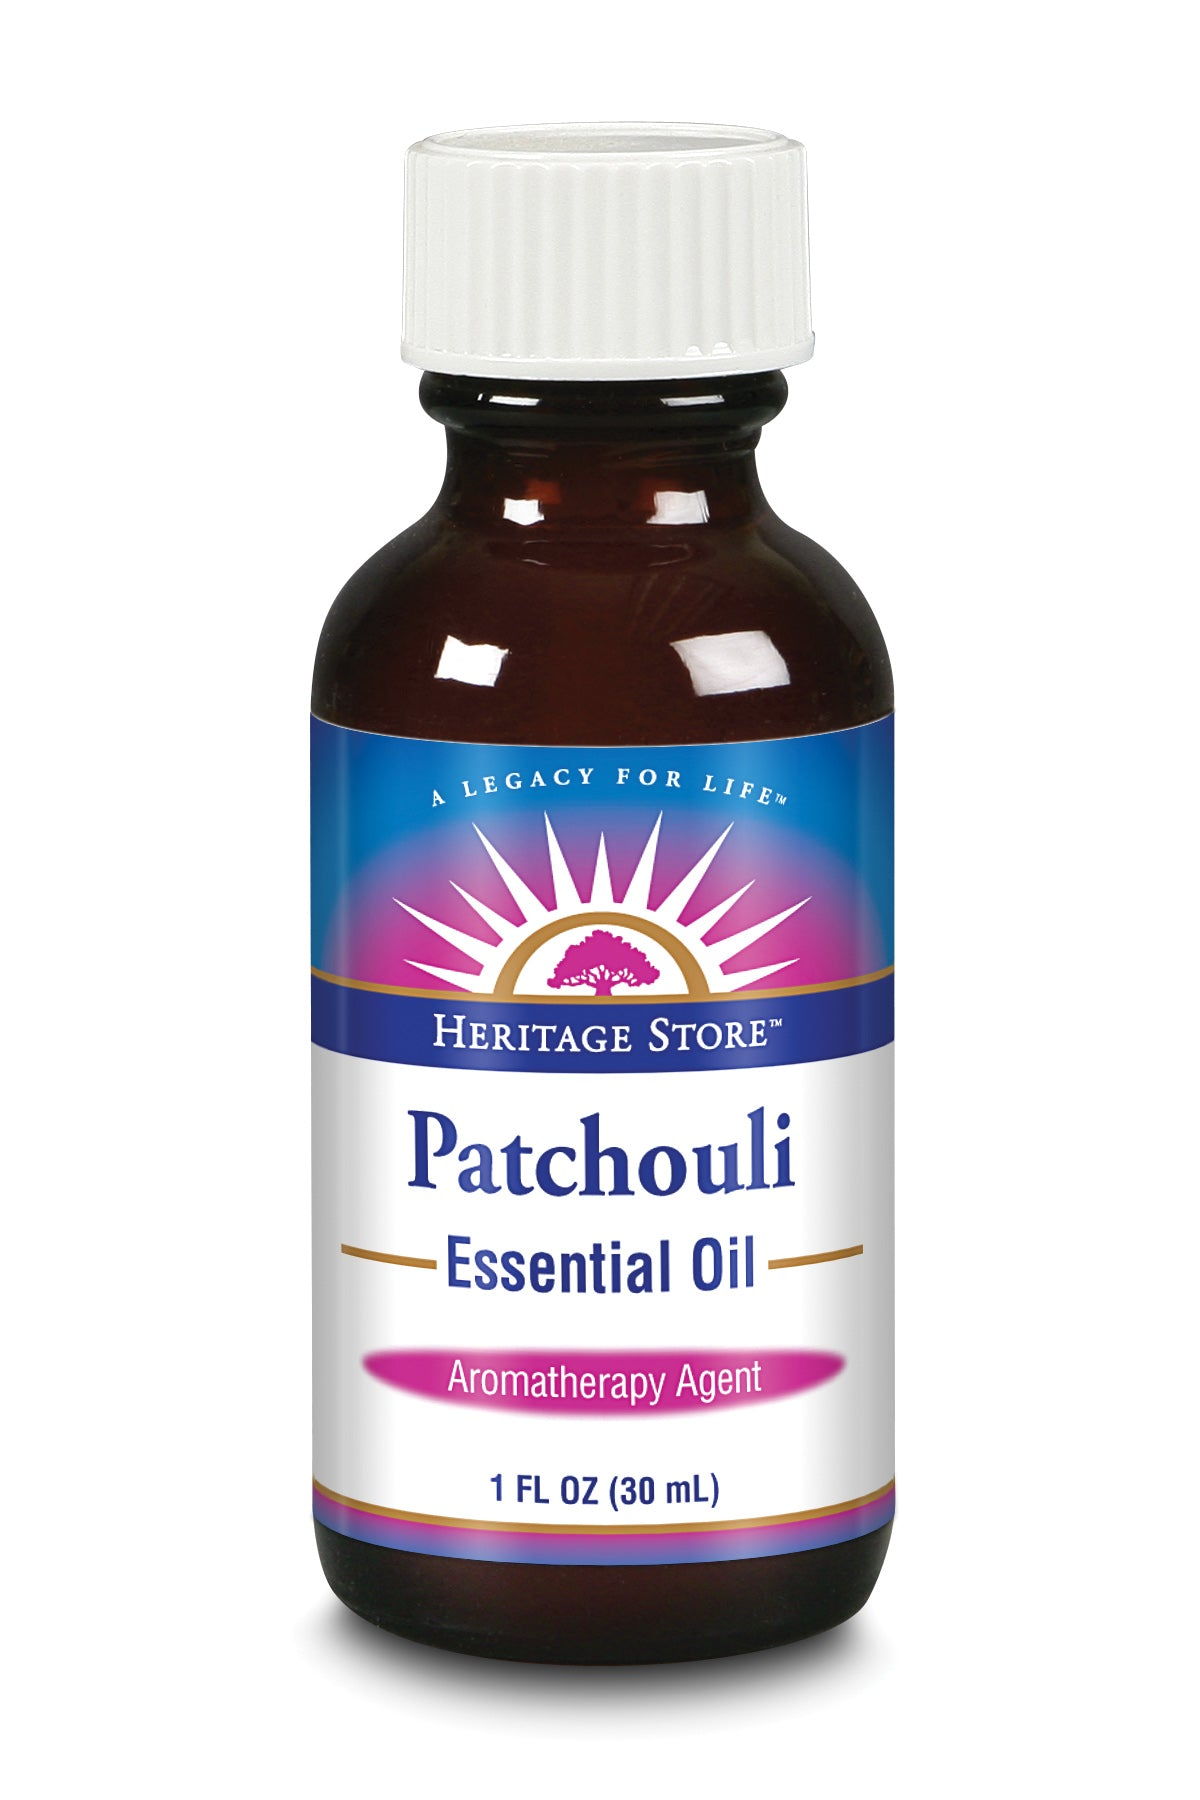 Patchouli, Essential Oil - Patchouli